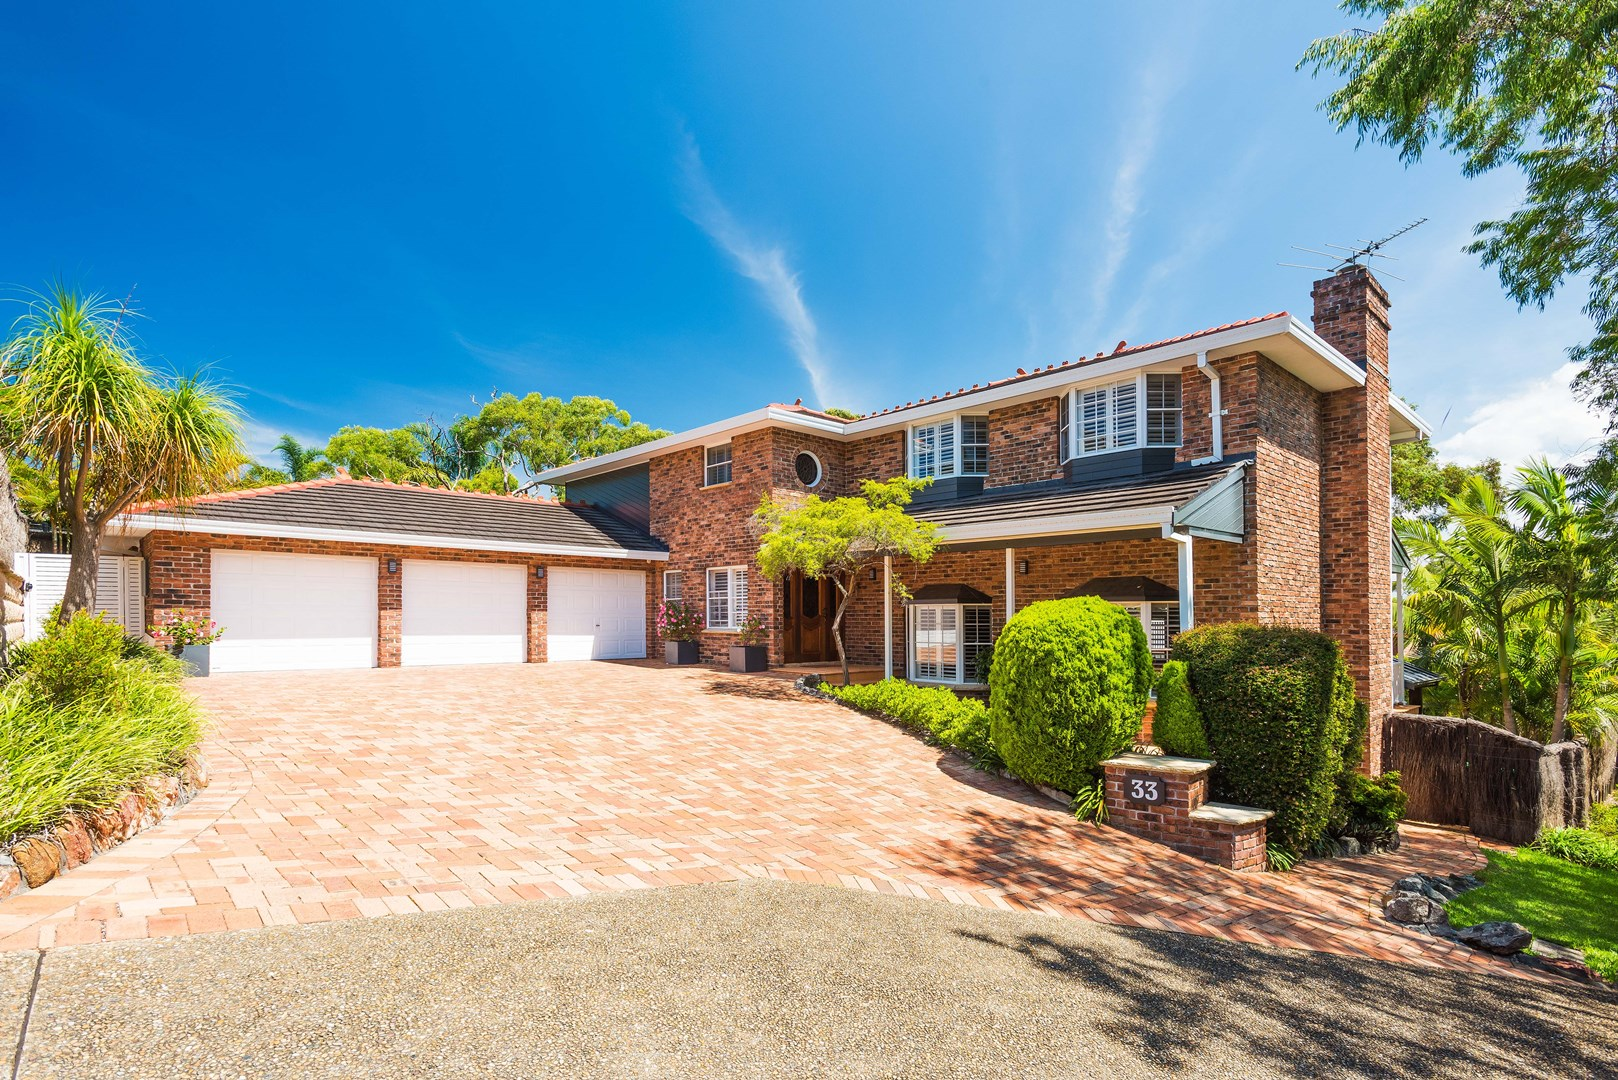 Picture of 33 Mirral Road, Caringbah South